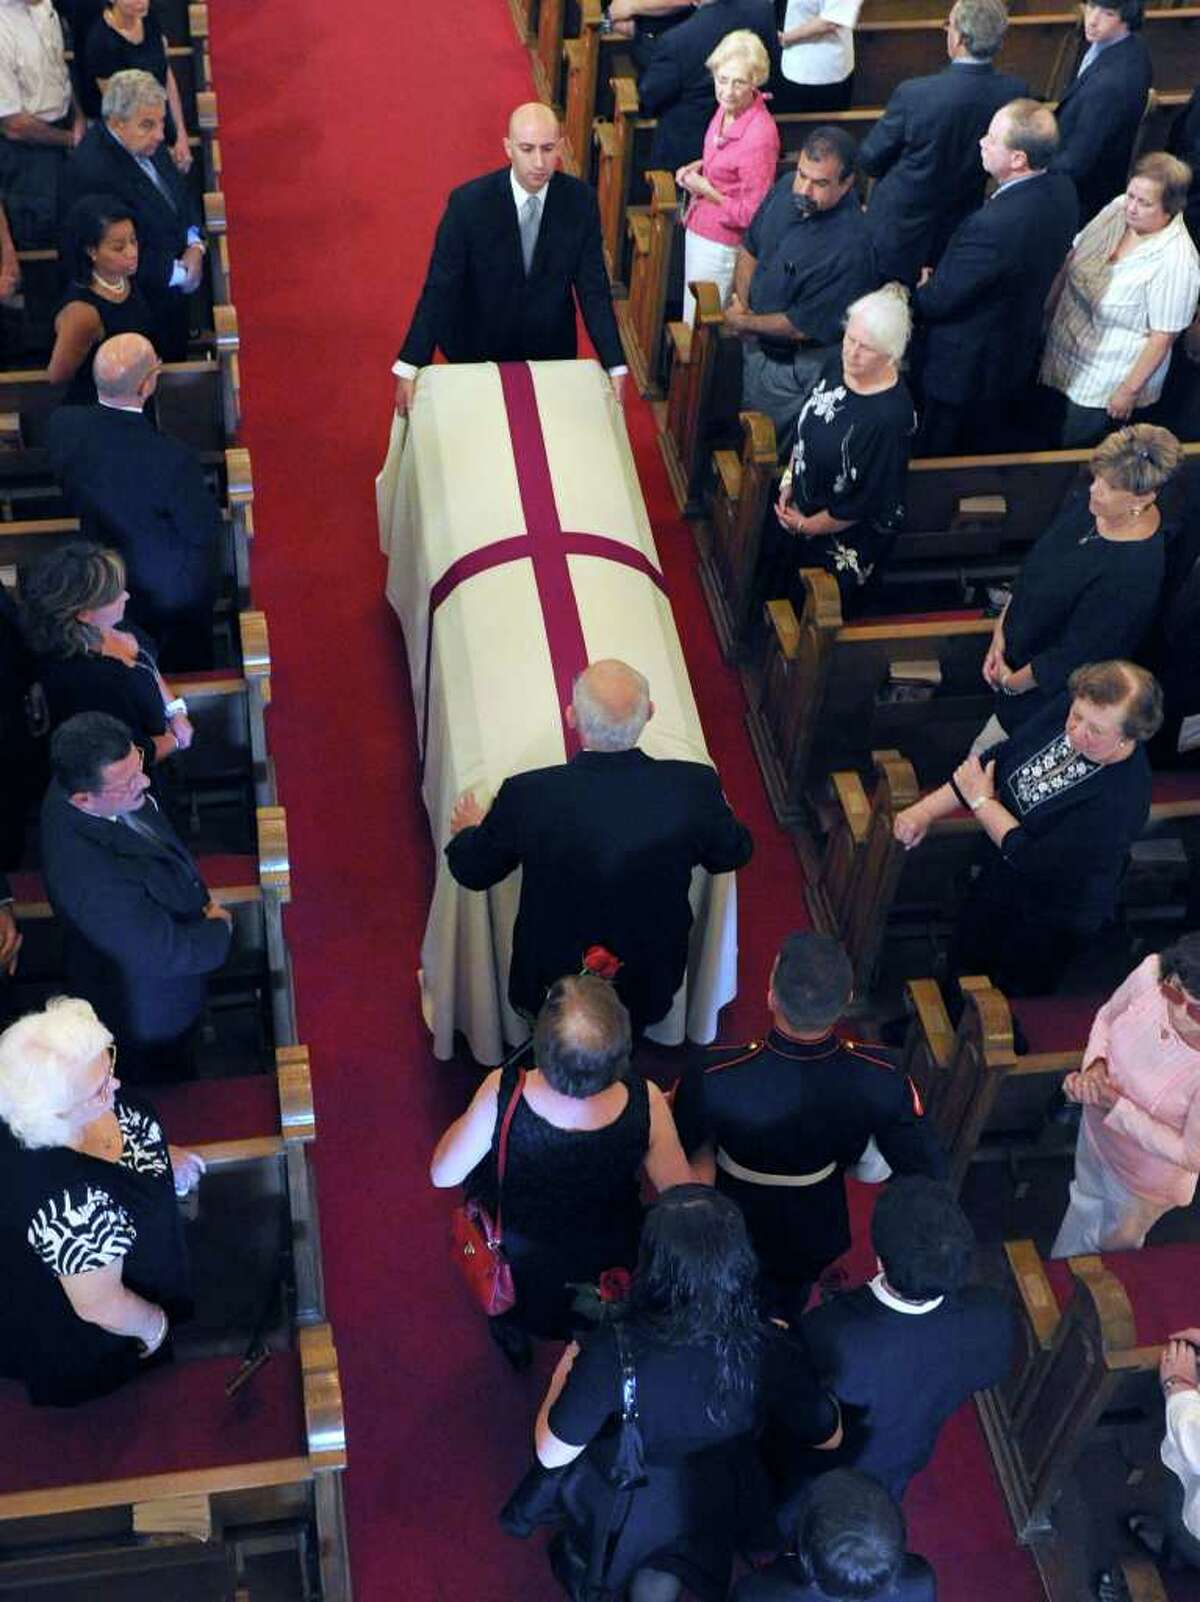 The coffin bearing the body of former Danbury Mayor James E. Dyer is brought into St. Joseph Church in Danbury Monday morning, Aug. 1, 2011.